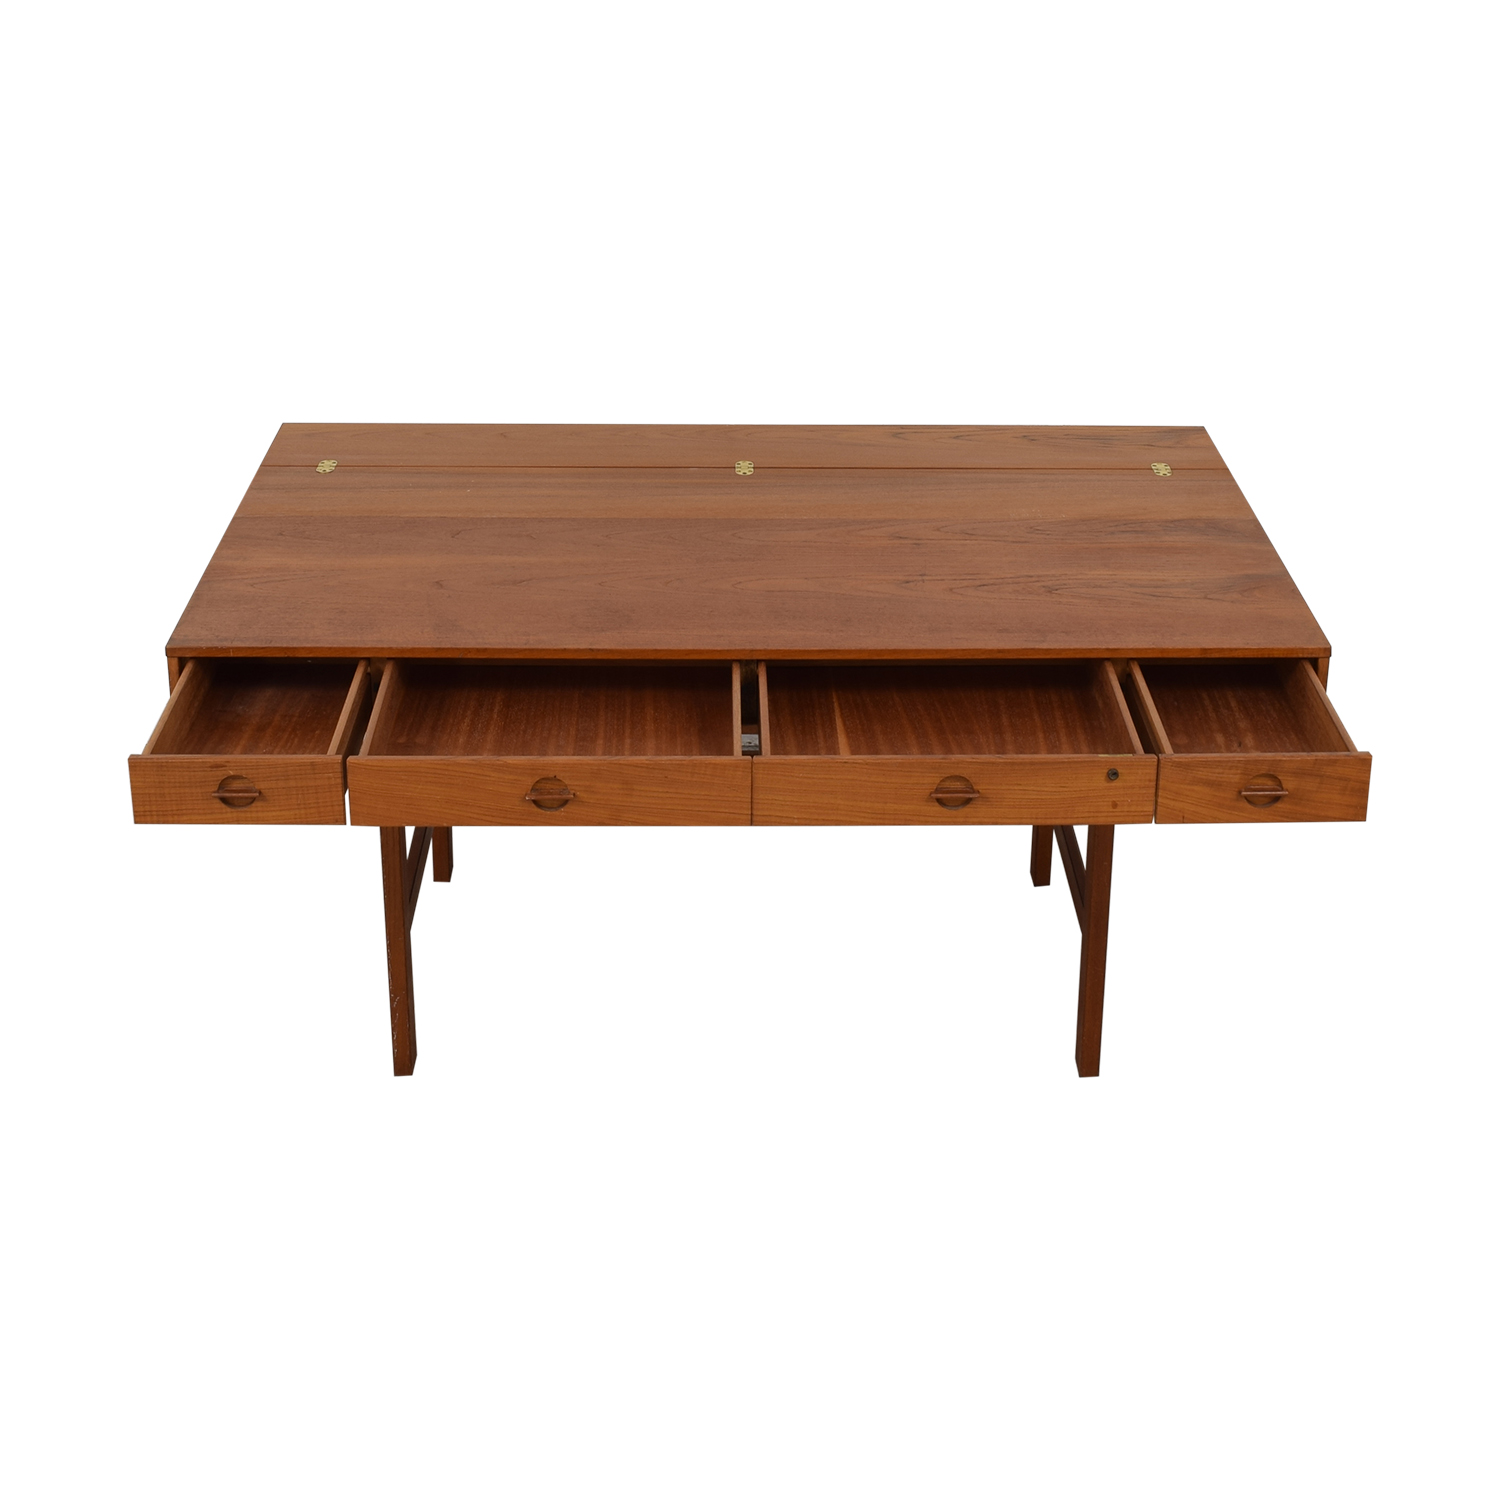 Løvig Peter Lovig Nielsen By Jens Quistgaard Flip-Top Desk in Teak on sale